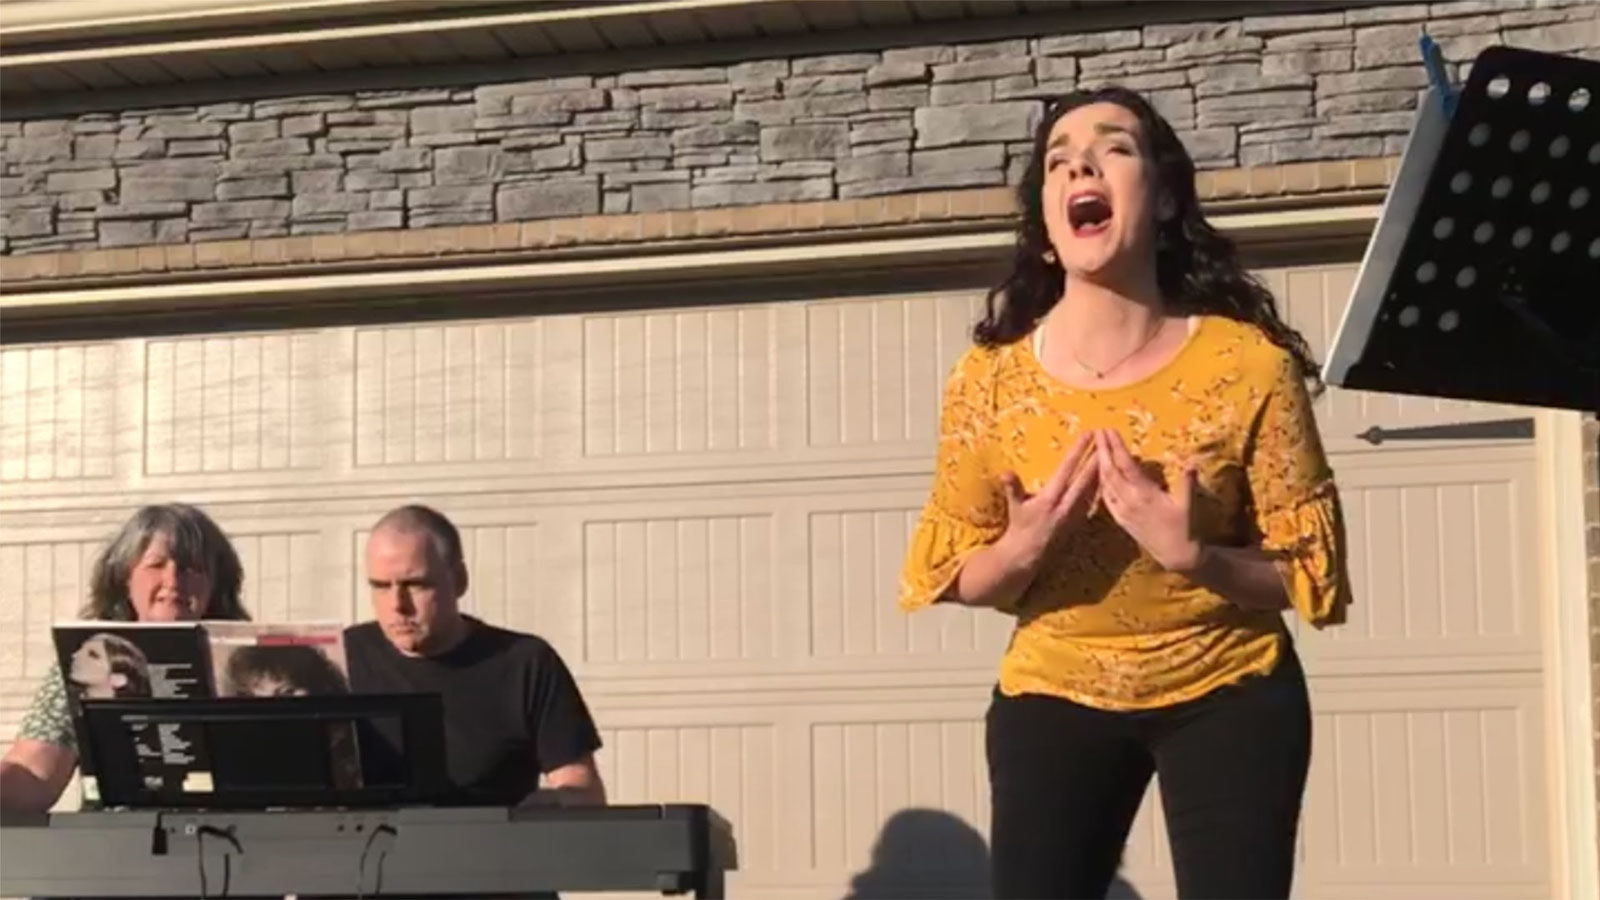 Esther Atkinson sings for her neighbors.